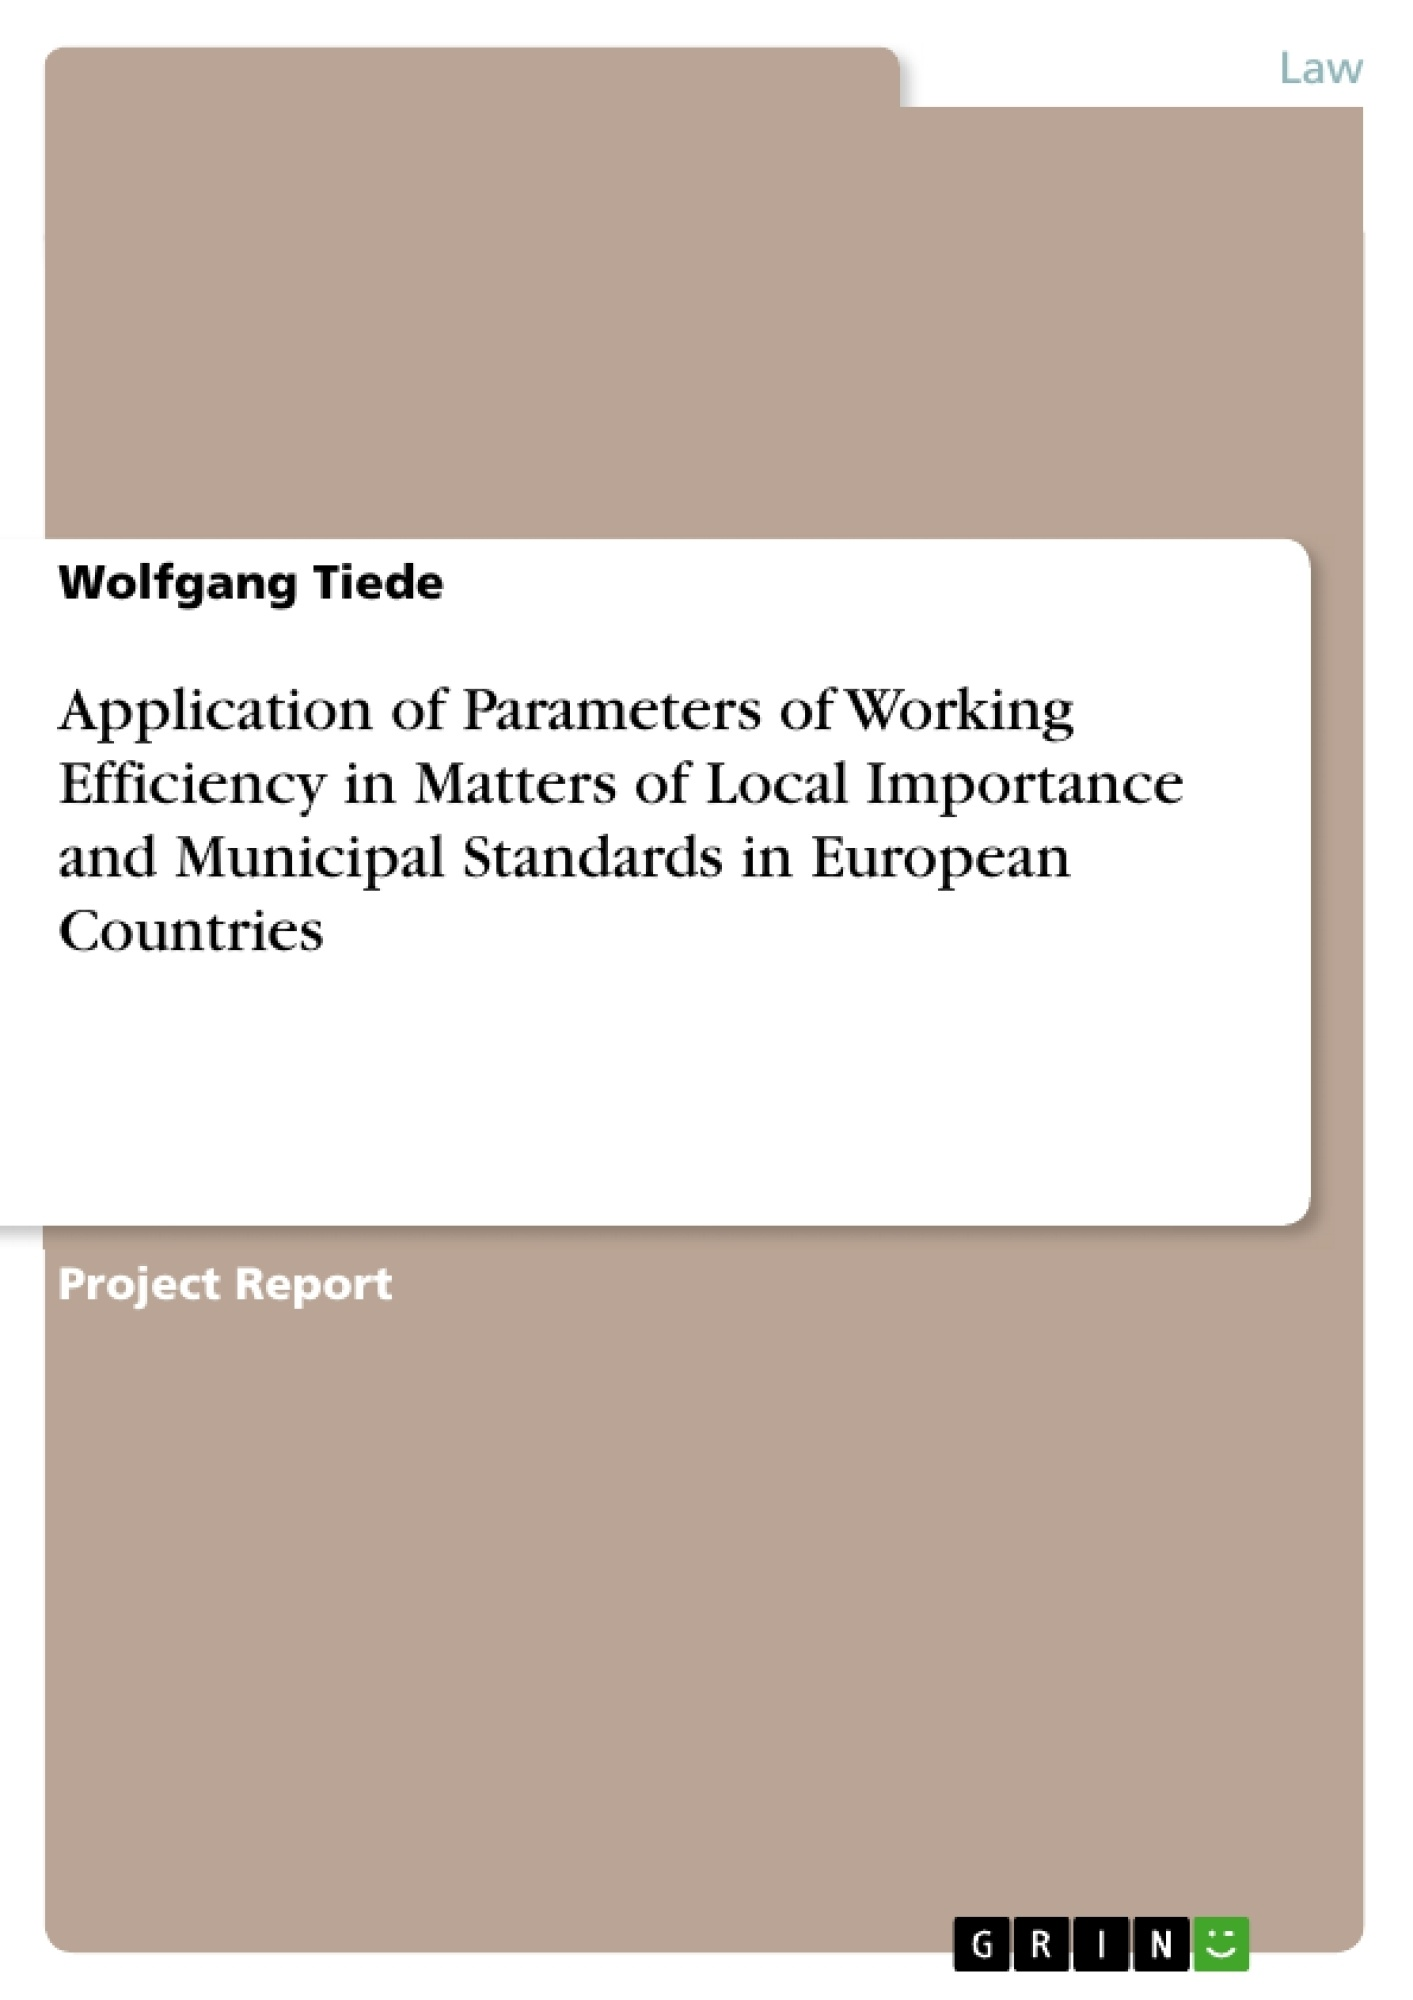 Title: Application of Parameters of Working Efficiency in Matters of Local Importance and Municipal Standards in European Countries